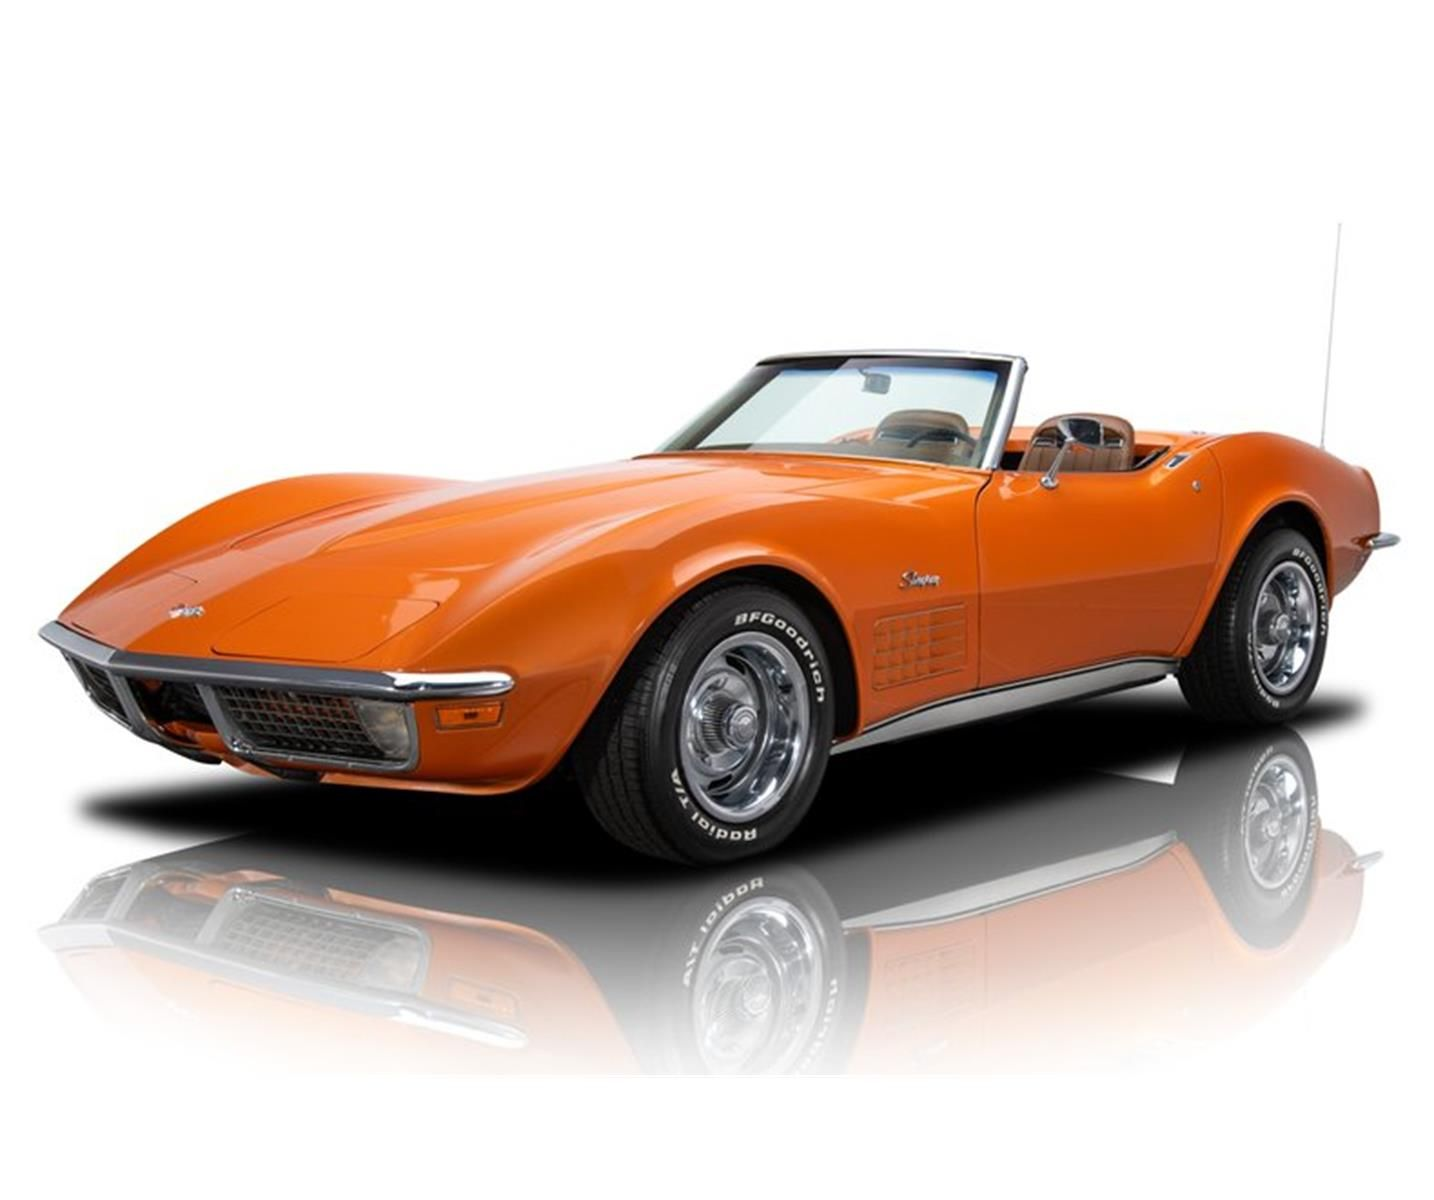 Large Photo Of Classic 1971 Corvette 39 900 00 Nk3u